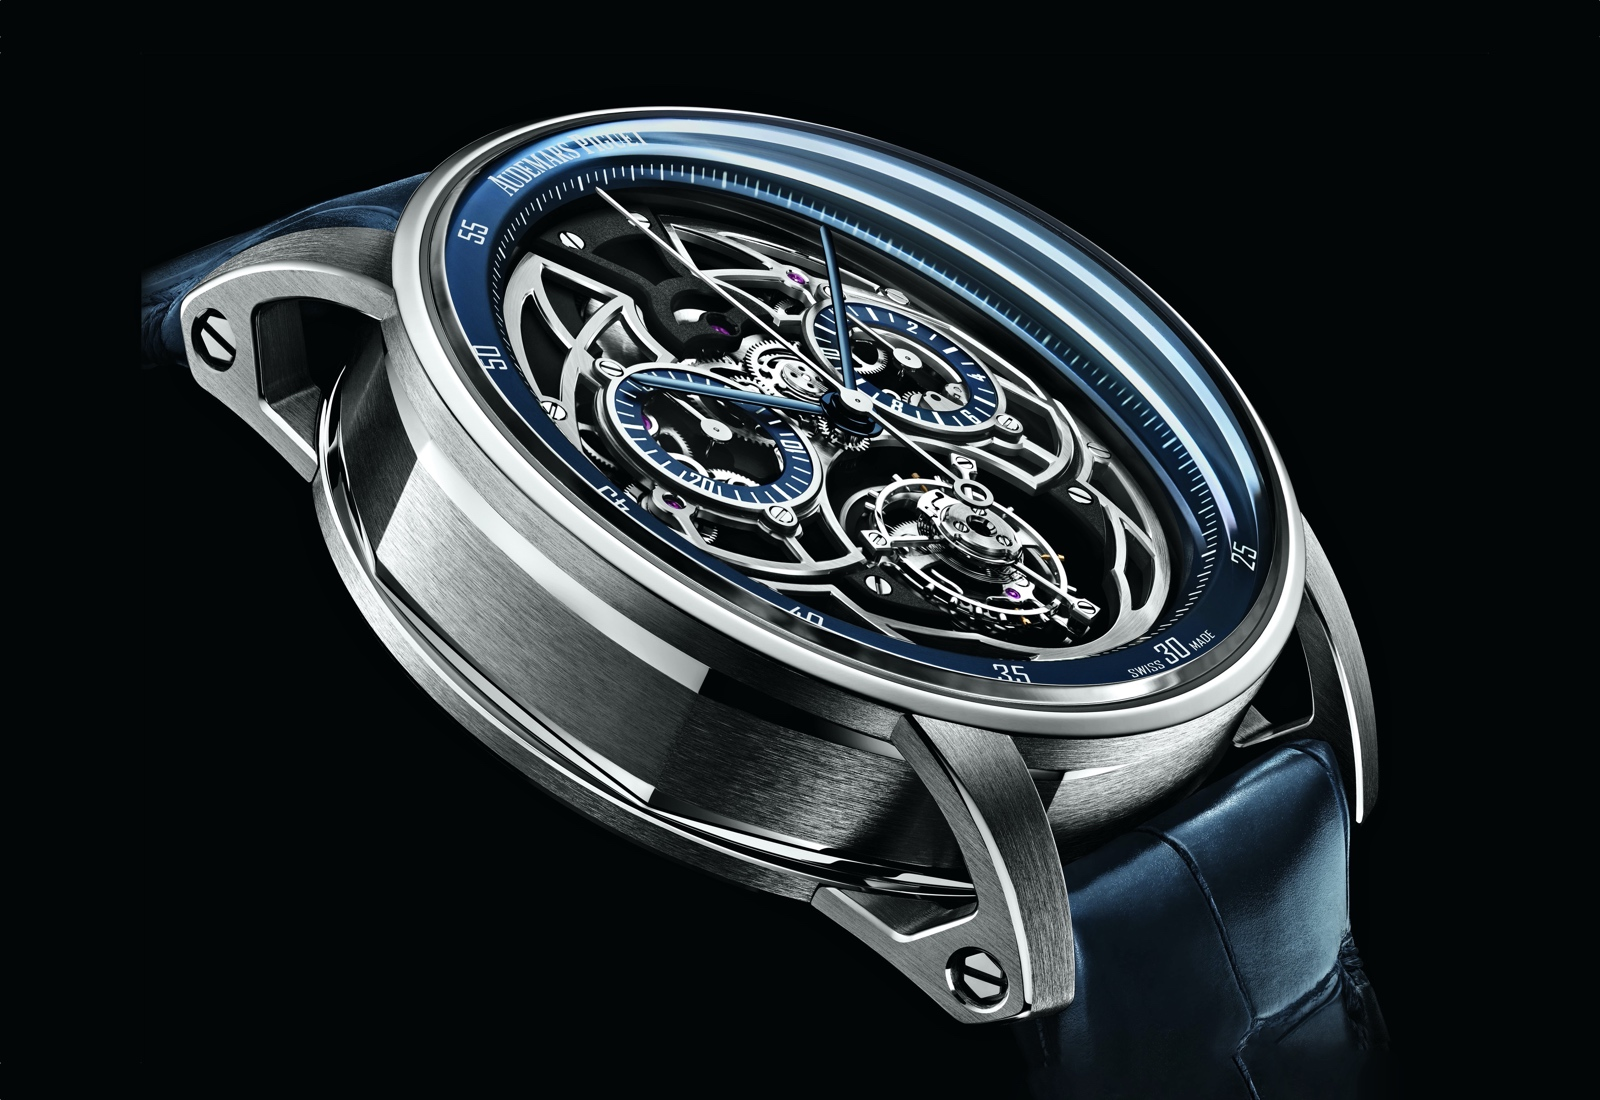 Audemars Piguet Code 11.59 Selfwinding Flying Tourbillon Chronograph - carrura